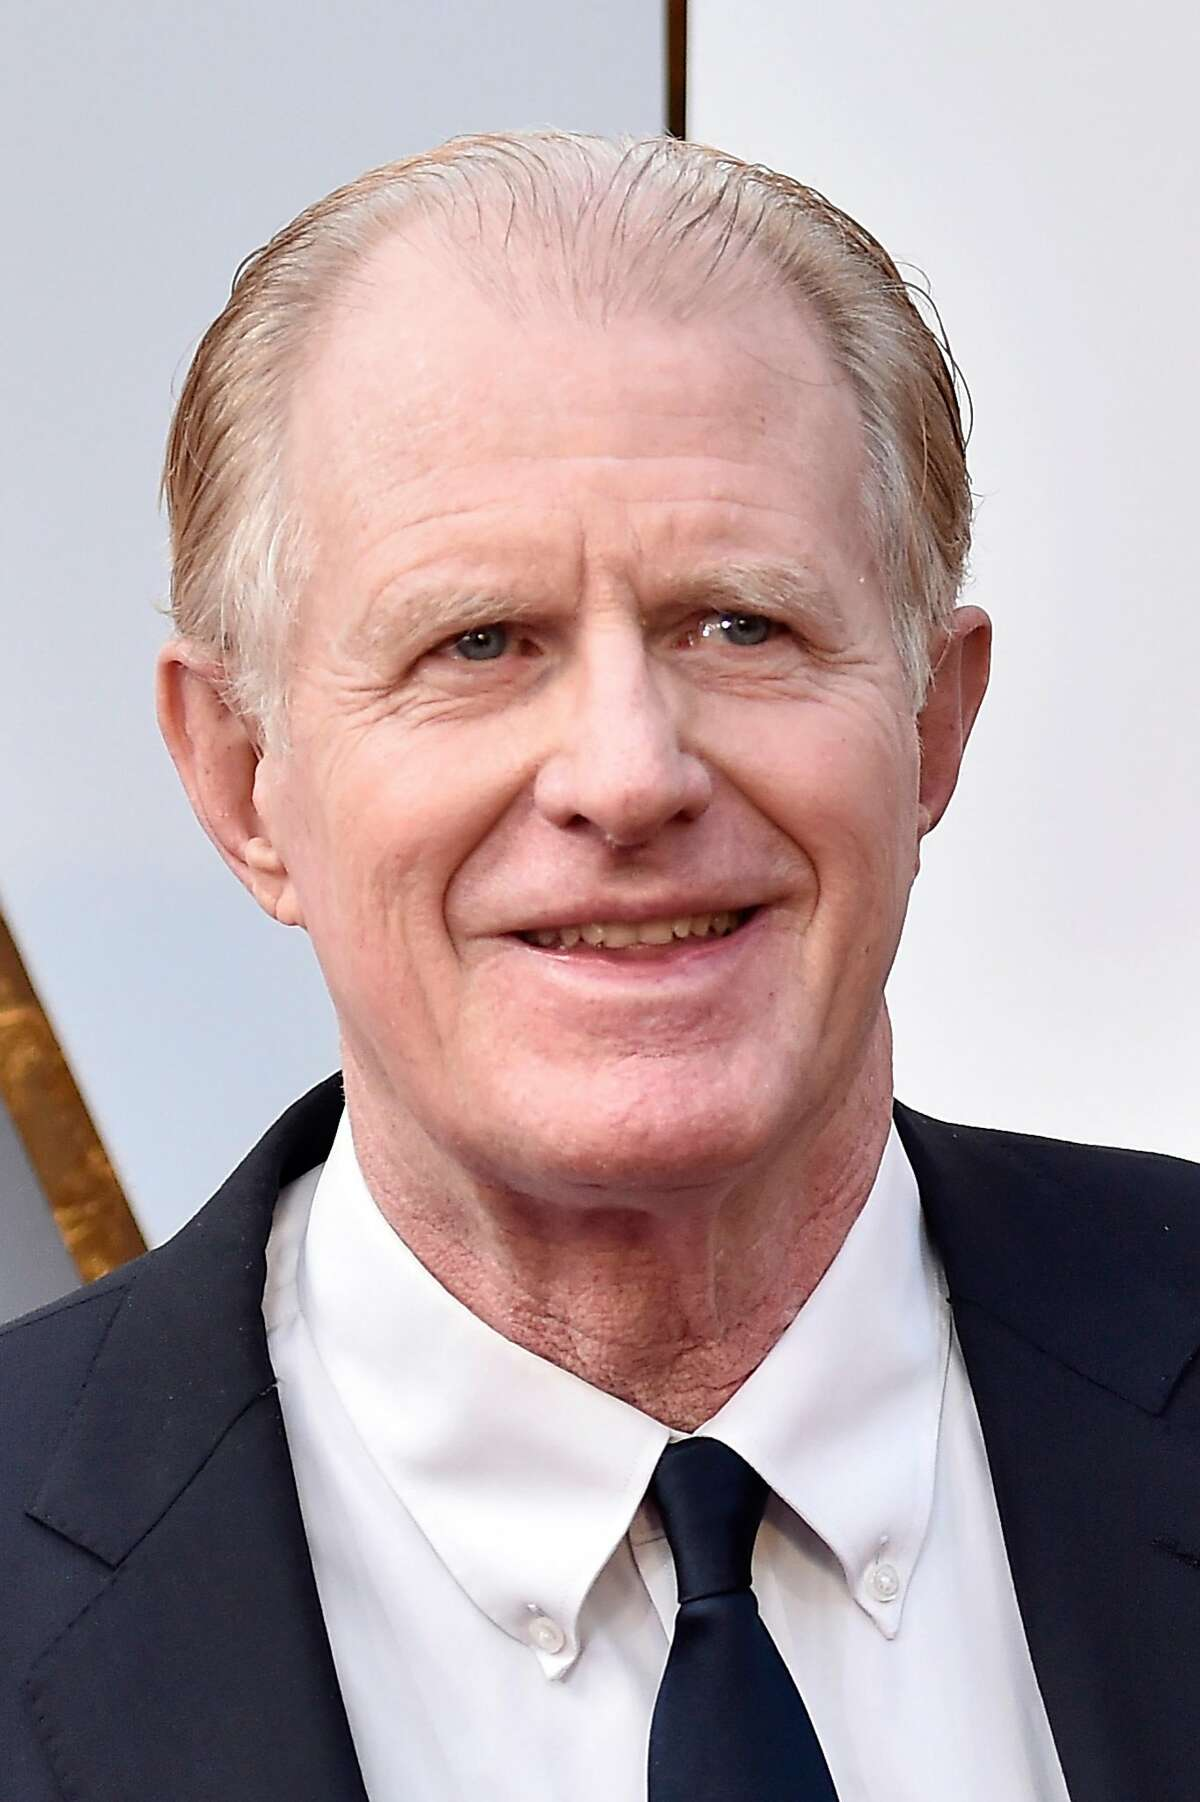 HOLLYWOOD, CA - MARCH 04: Ed Begley Jr. attends the 90th Annual Academy Awards at Hollywood & Highland Center on March 4, 2018 in Hollywood, California. (Photo by Frazer Harrison/Getty Images)